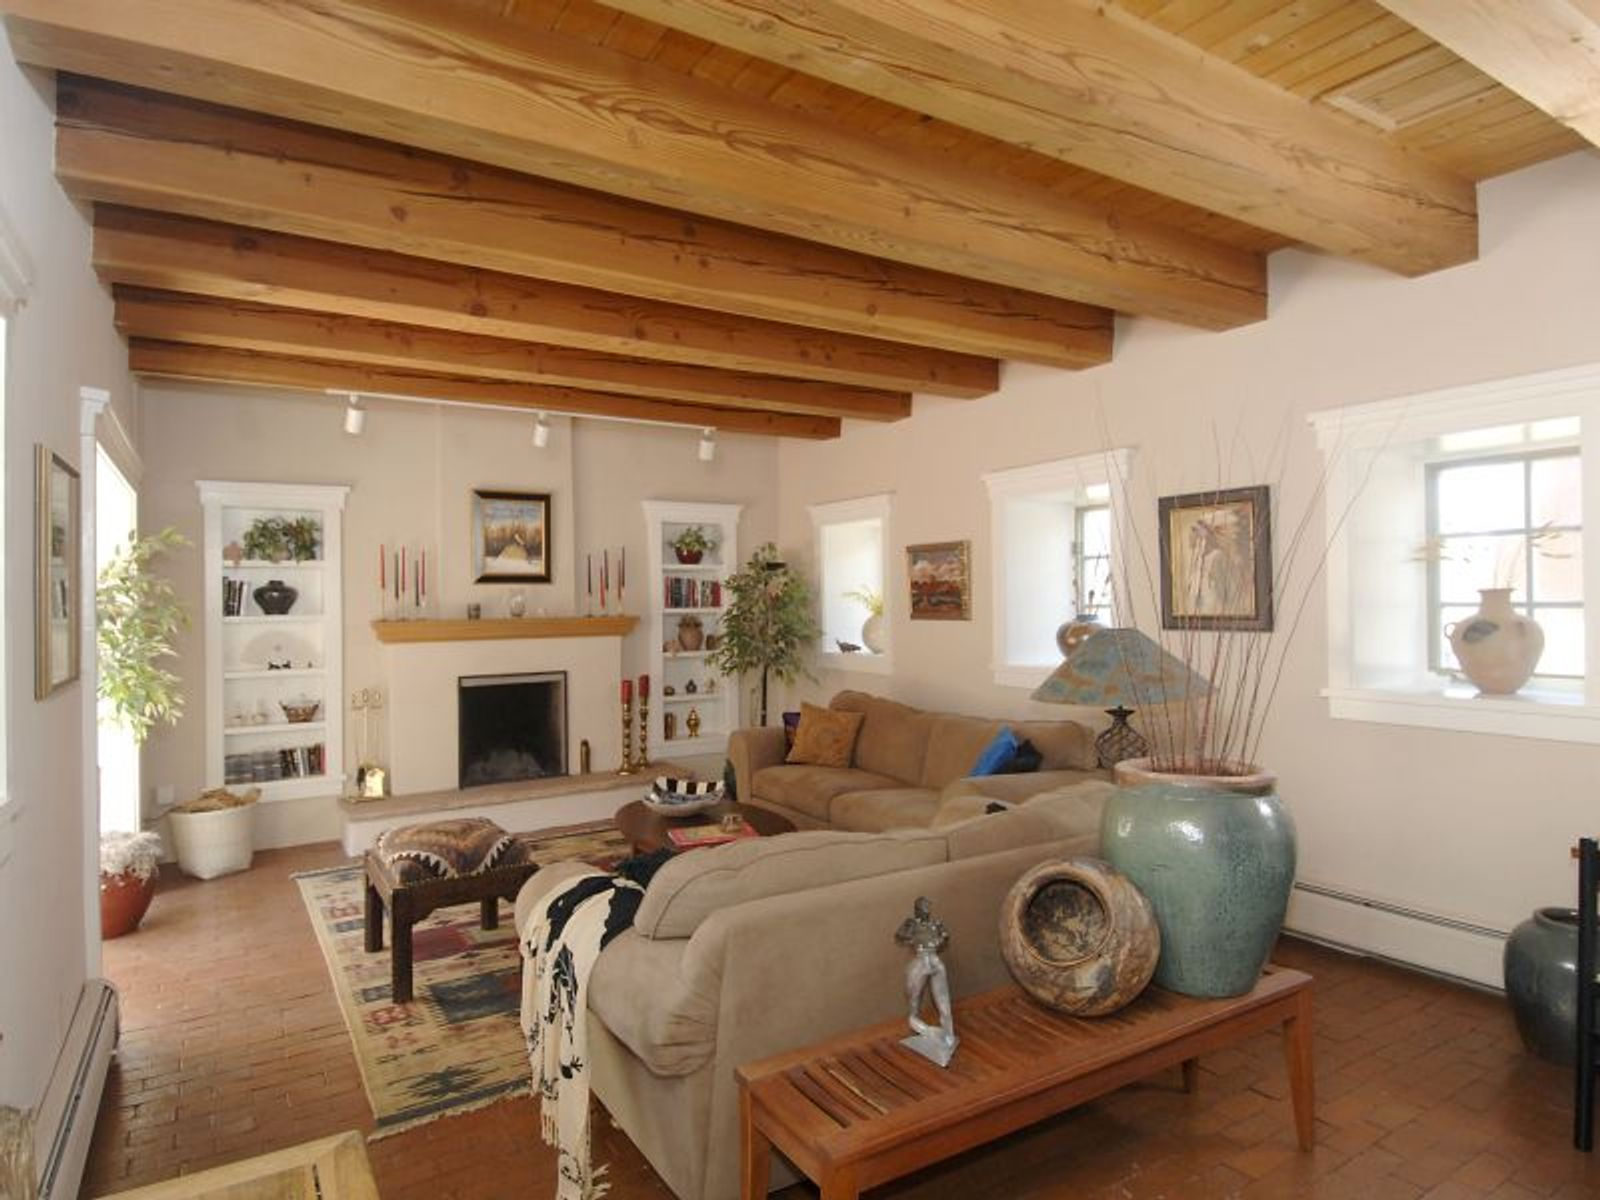 322 Magdalena Road # 6, Santa Fe NM Condominium - Santa Fe Real Estate